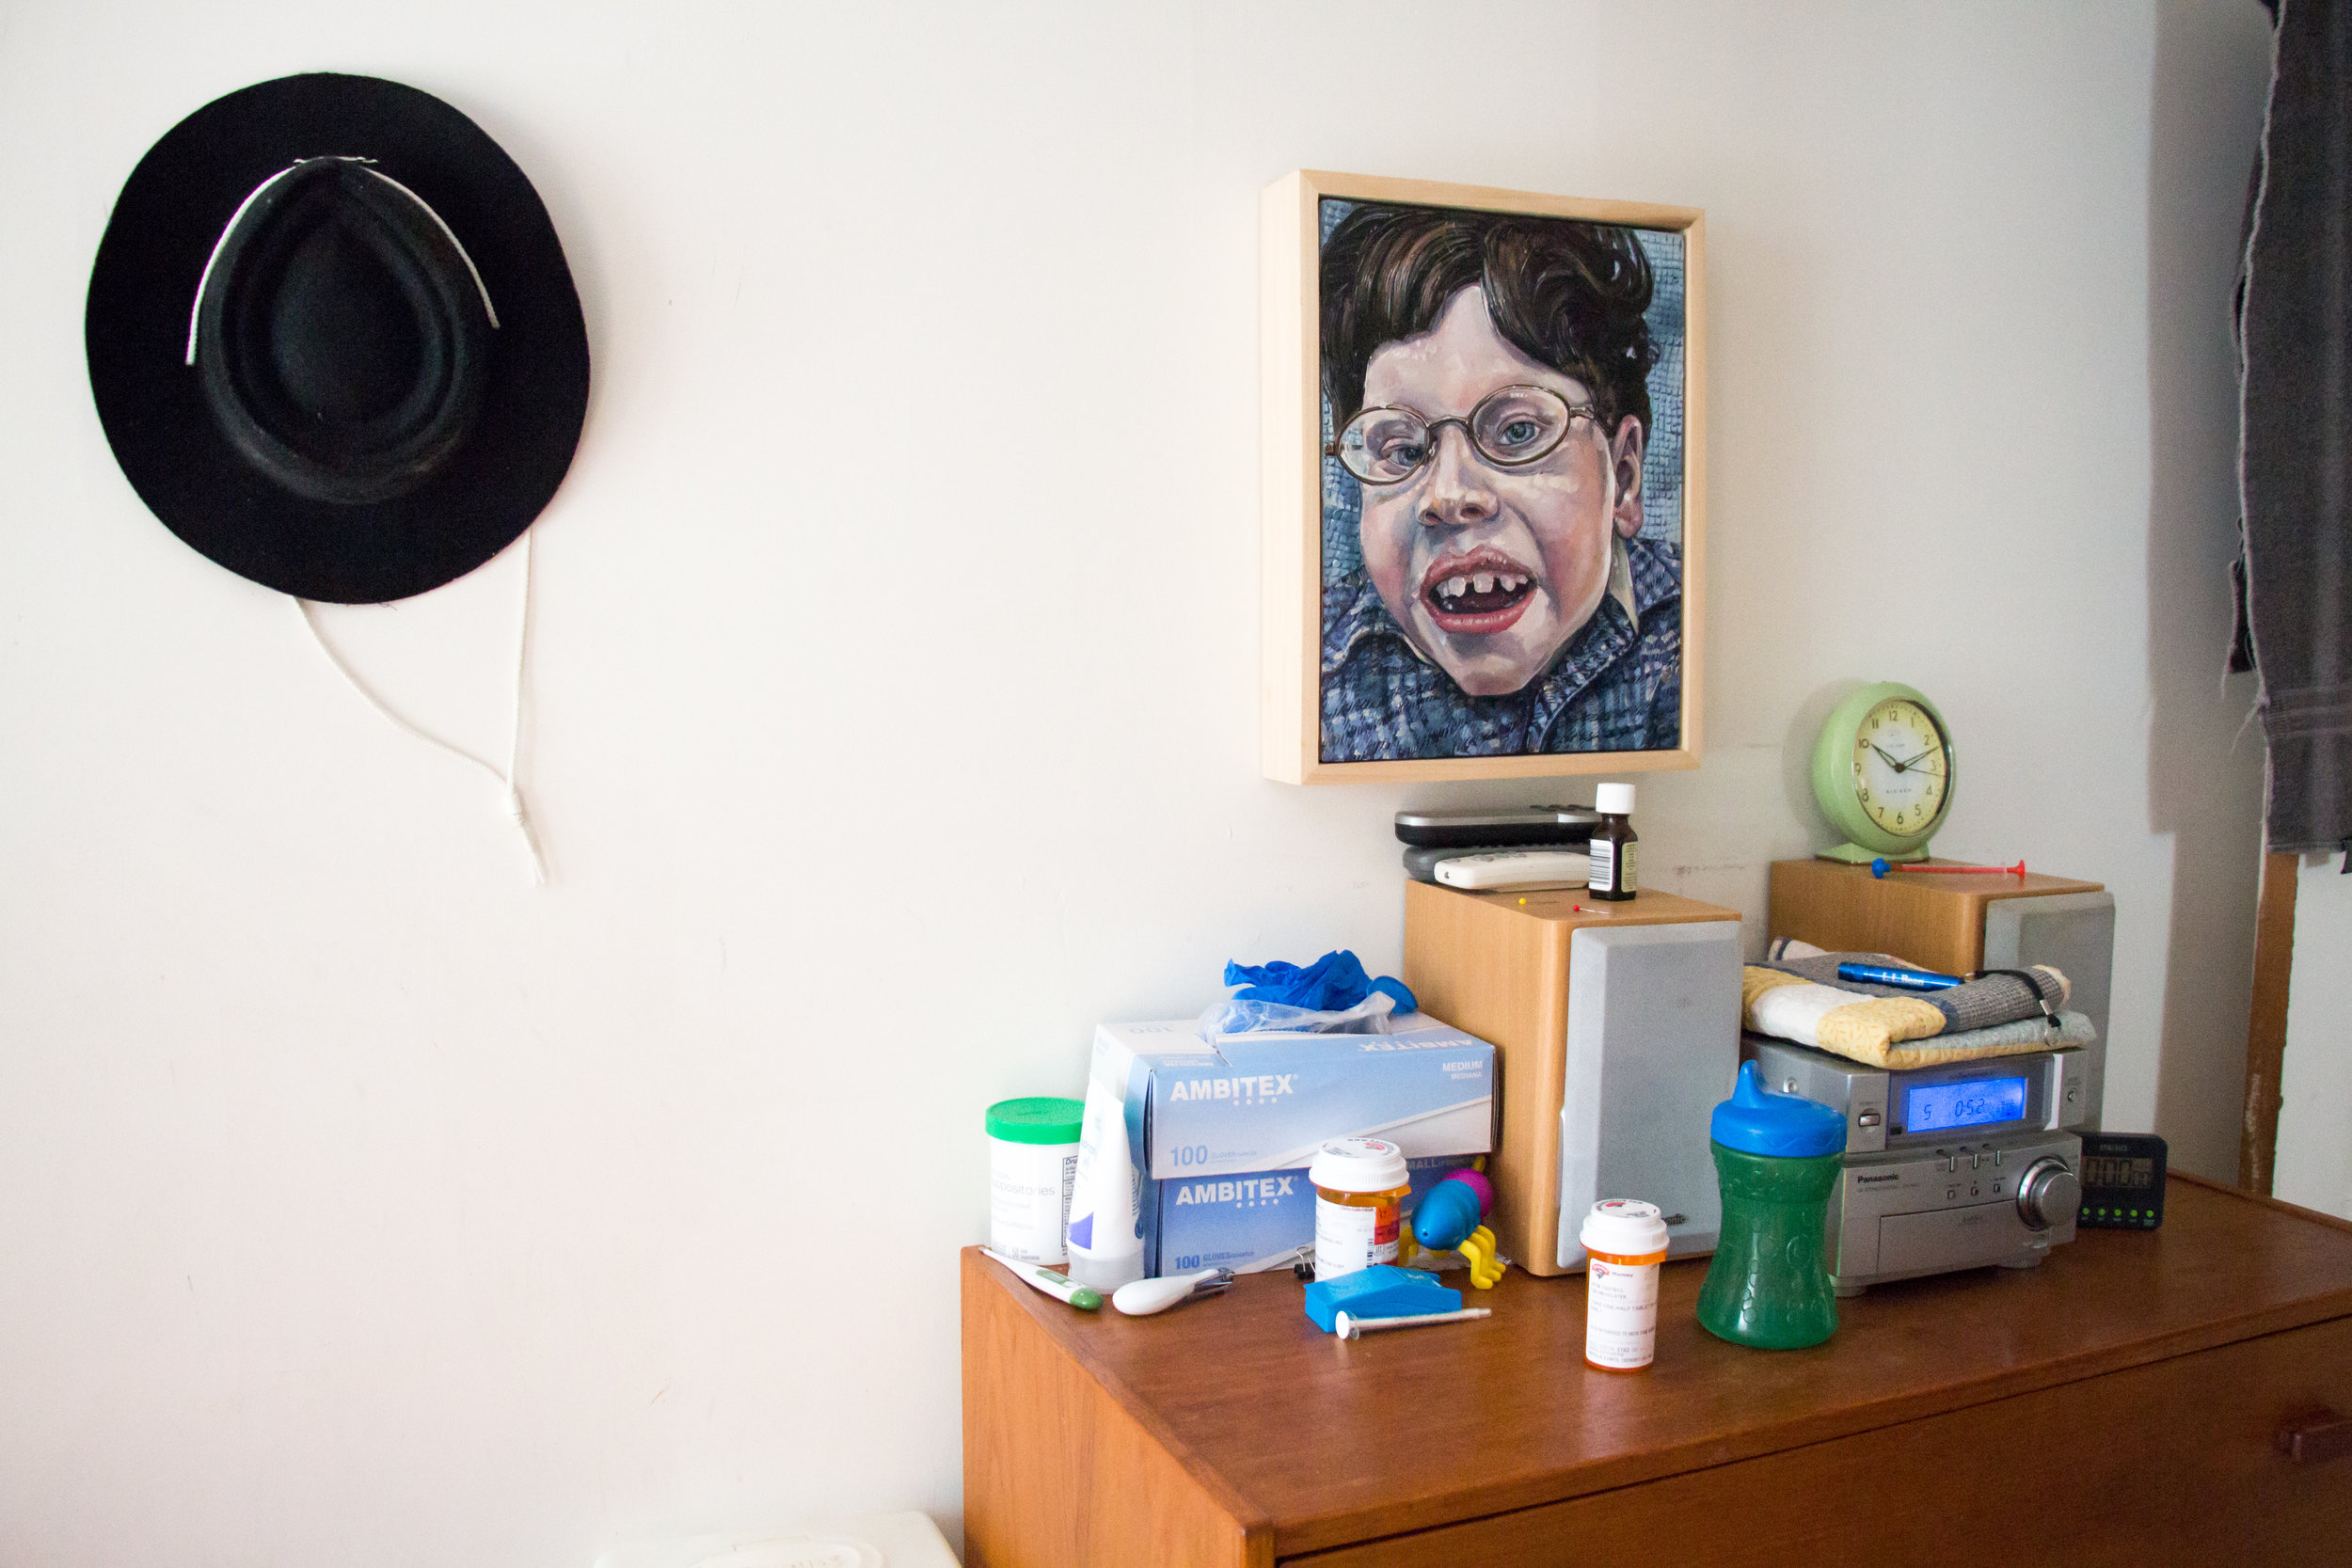 A portrait of Calvin hangs above a dresser covered with medications and medical supplies in his bedroom on September 30, 2017 in Brunswick, Maine. Calvin doesn't sleep very well and wakes up several times a night. Christy gets up to soothe him, cover him with his blanket, or give him a dose of medication.